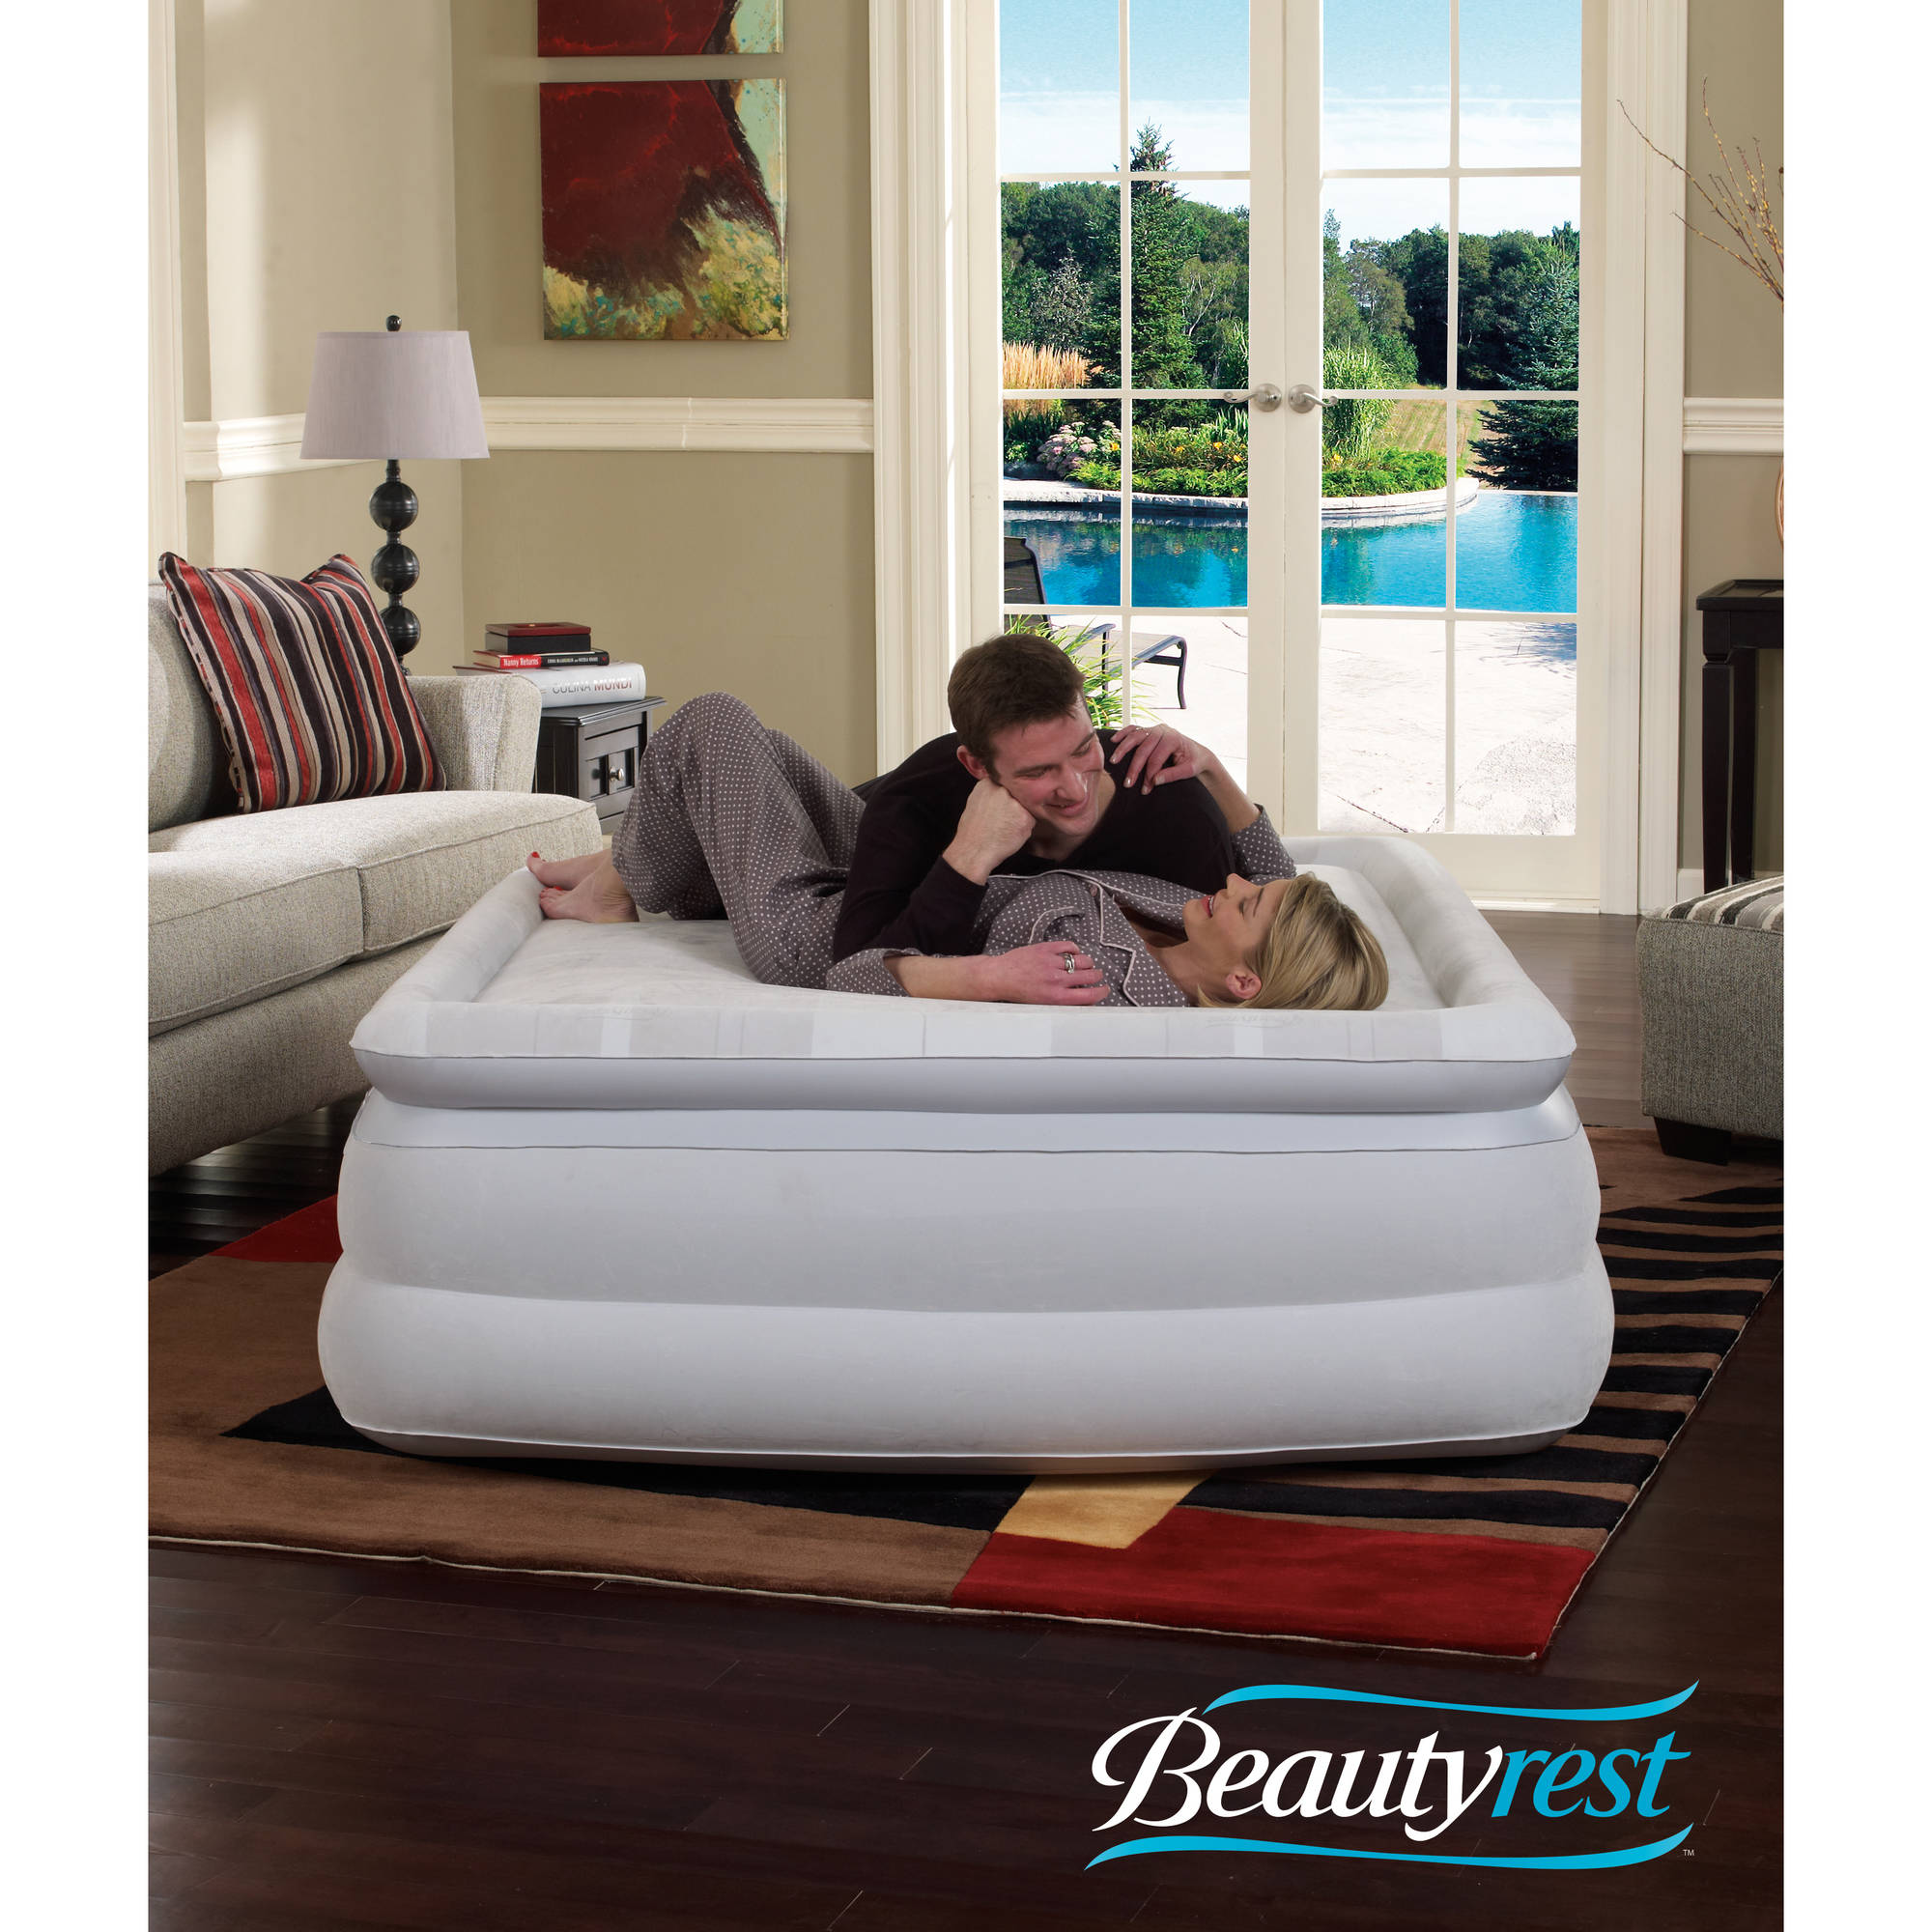 beautyrest air mattress twin Simmons Beautyrest Silver Memory Aire with Internal Pump Raised  beautyrest air mattress twin